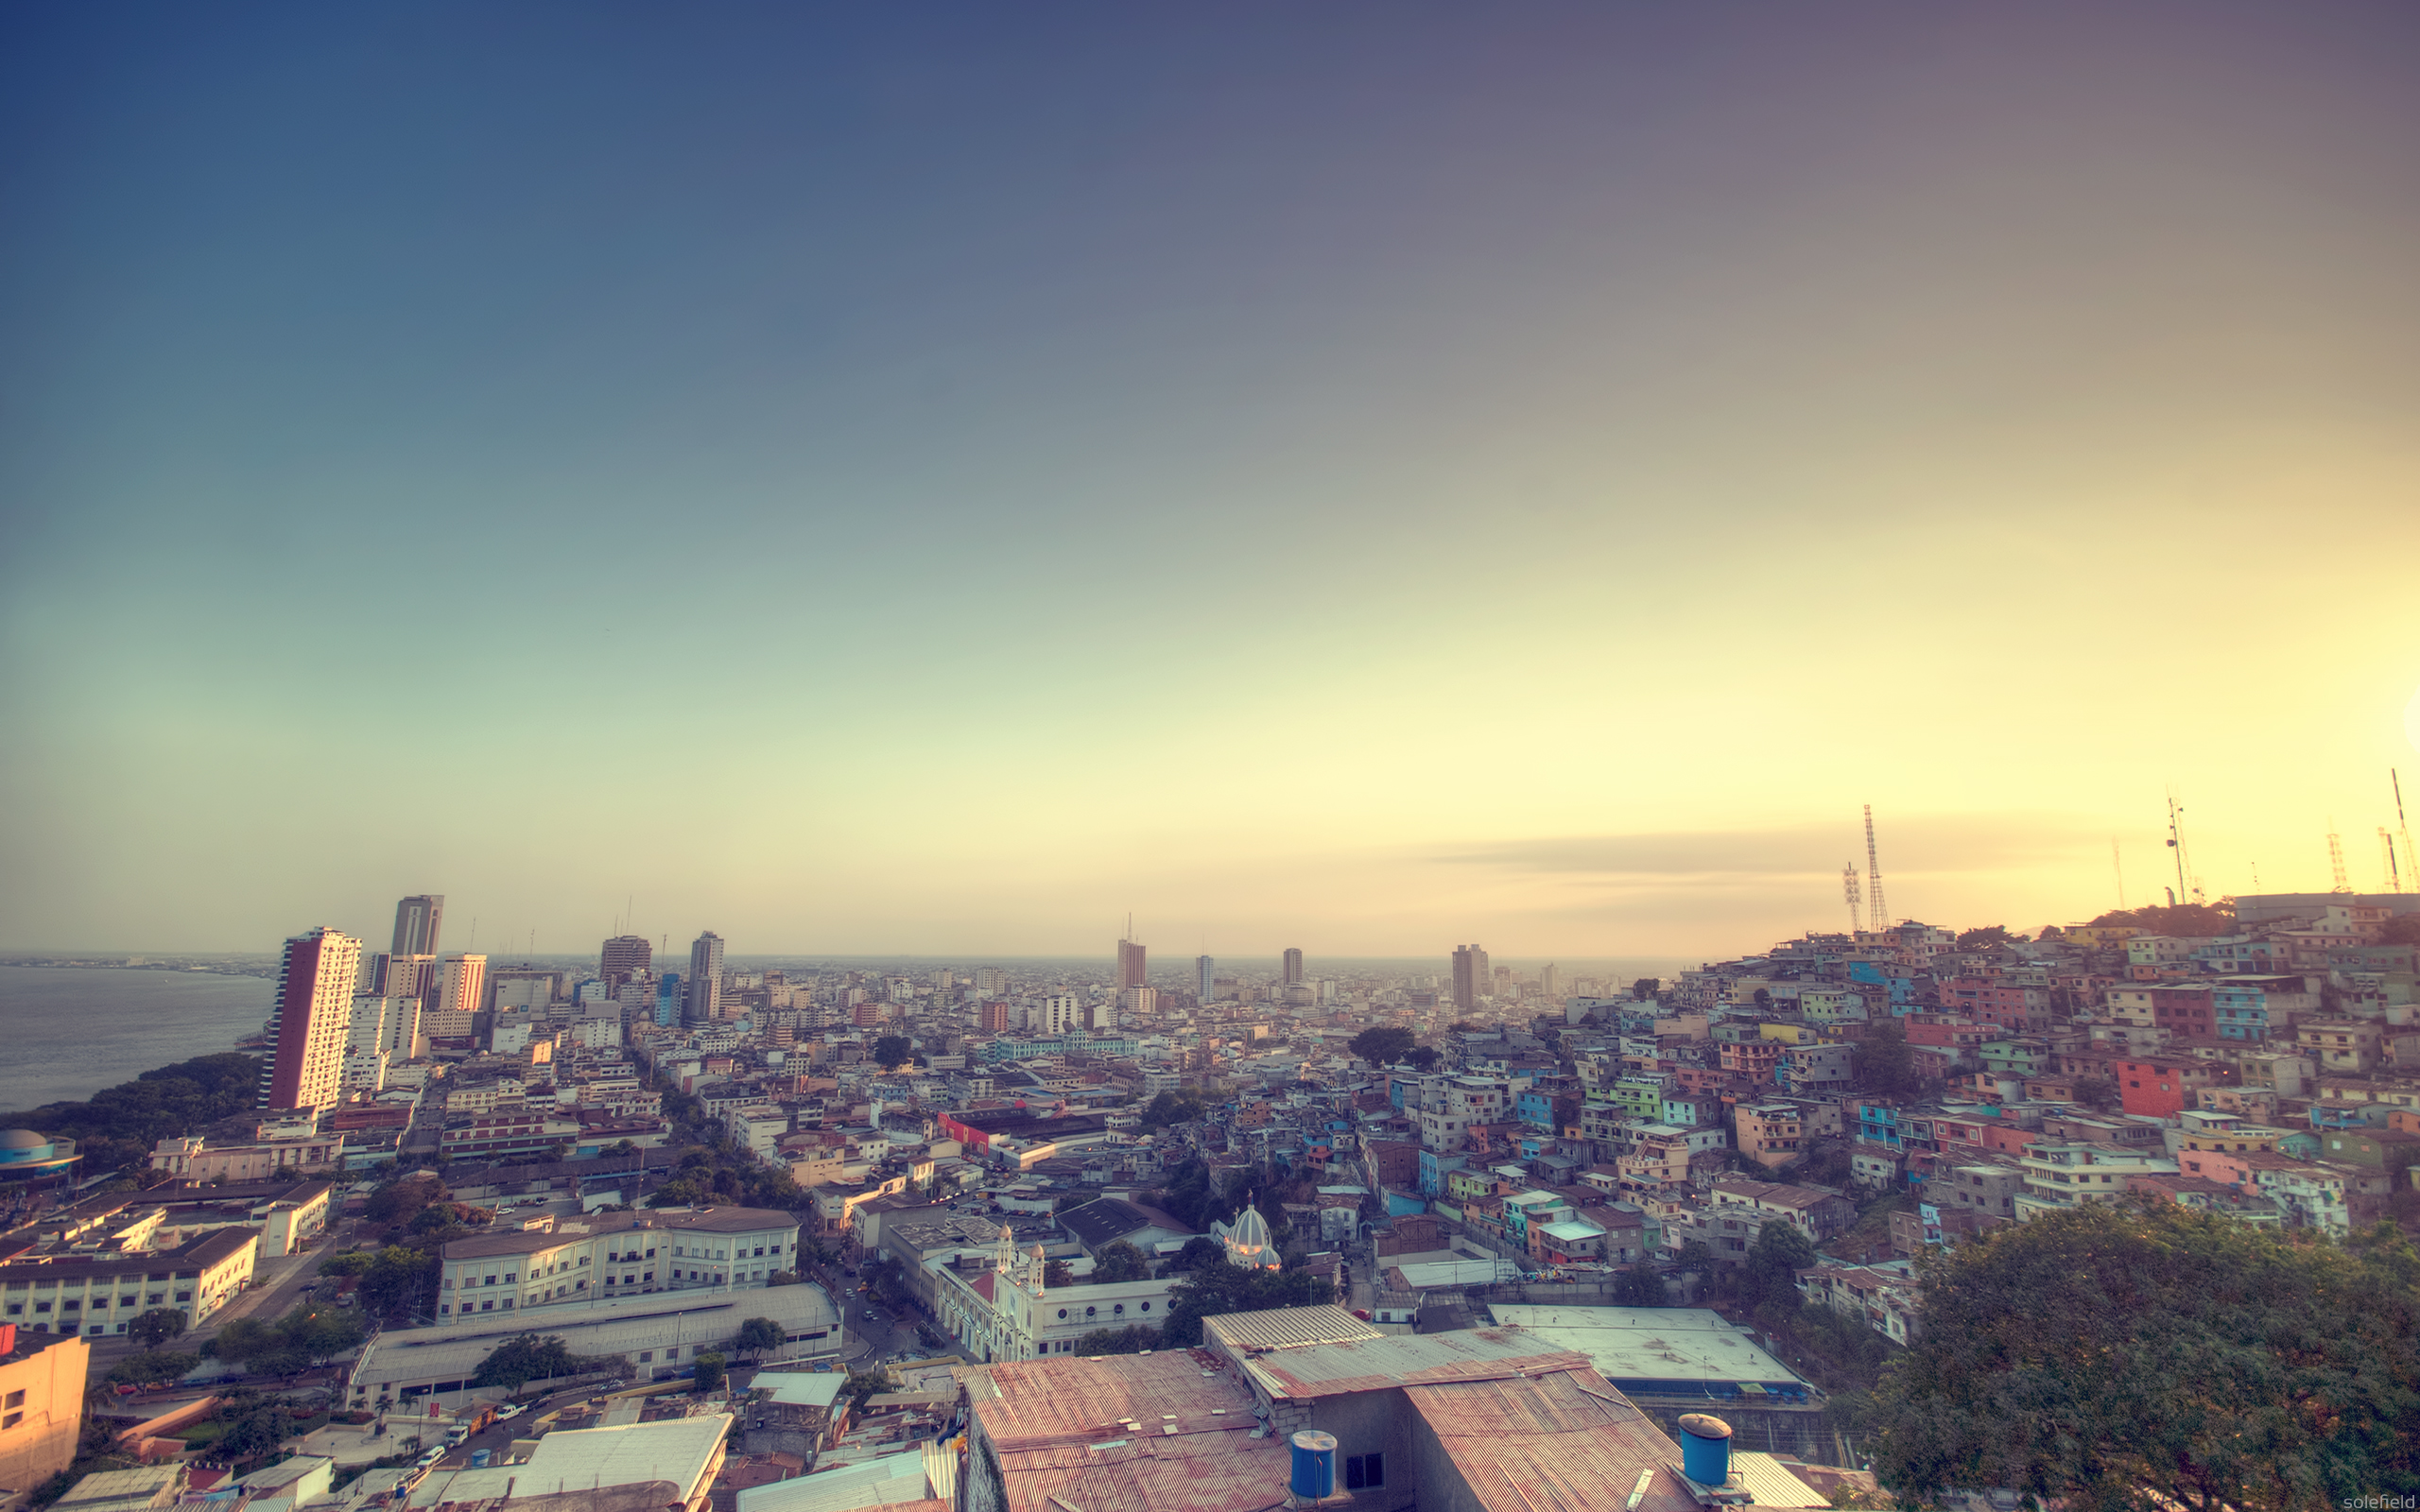 Guayaquil at sunset